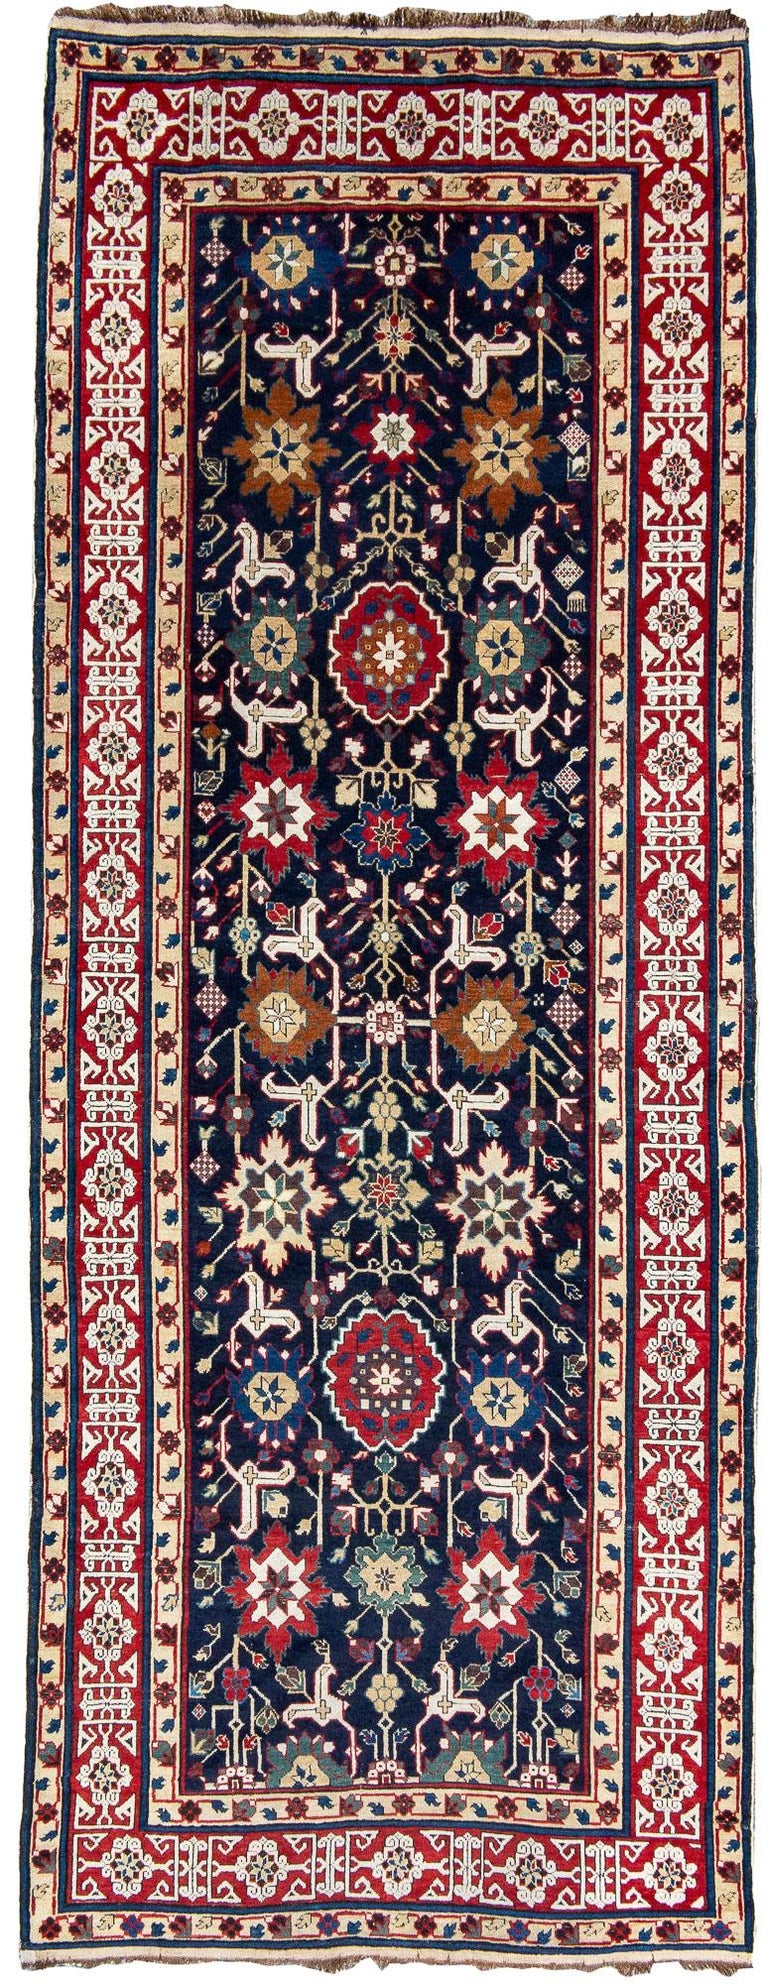 Woven in the east Caucasus near the Caspian coast, this Shirvan long rug uses perfect scale of drawing accentuated by vibrant saturated color. The field is composed of abstract floral ornament with a central column of varying rosettes flanked on